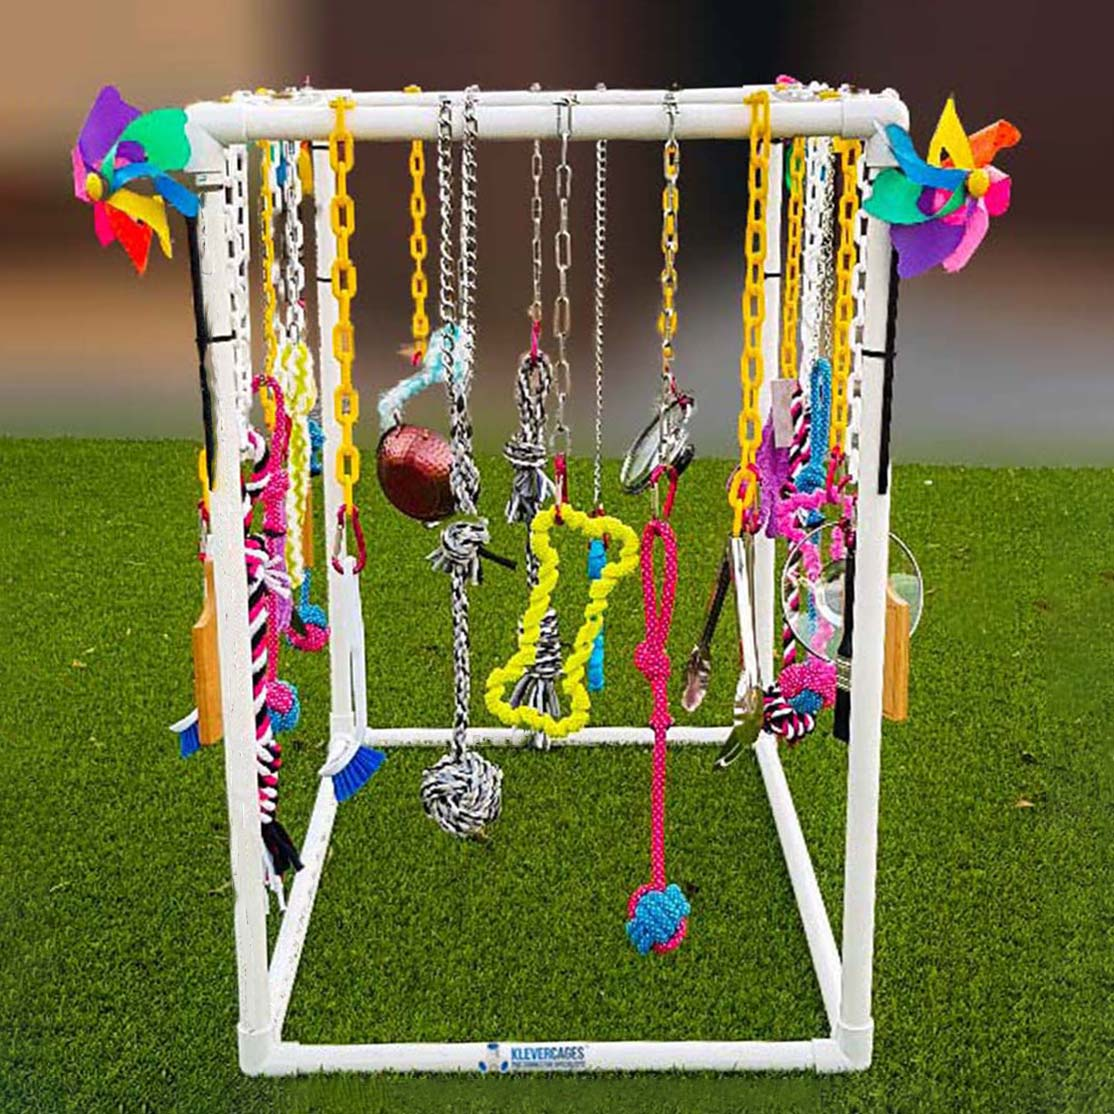 White PVC frame for puppy cat play gym with hanging toys different colour plastic chains and dog toys hanging from them